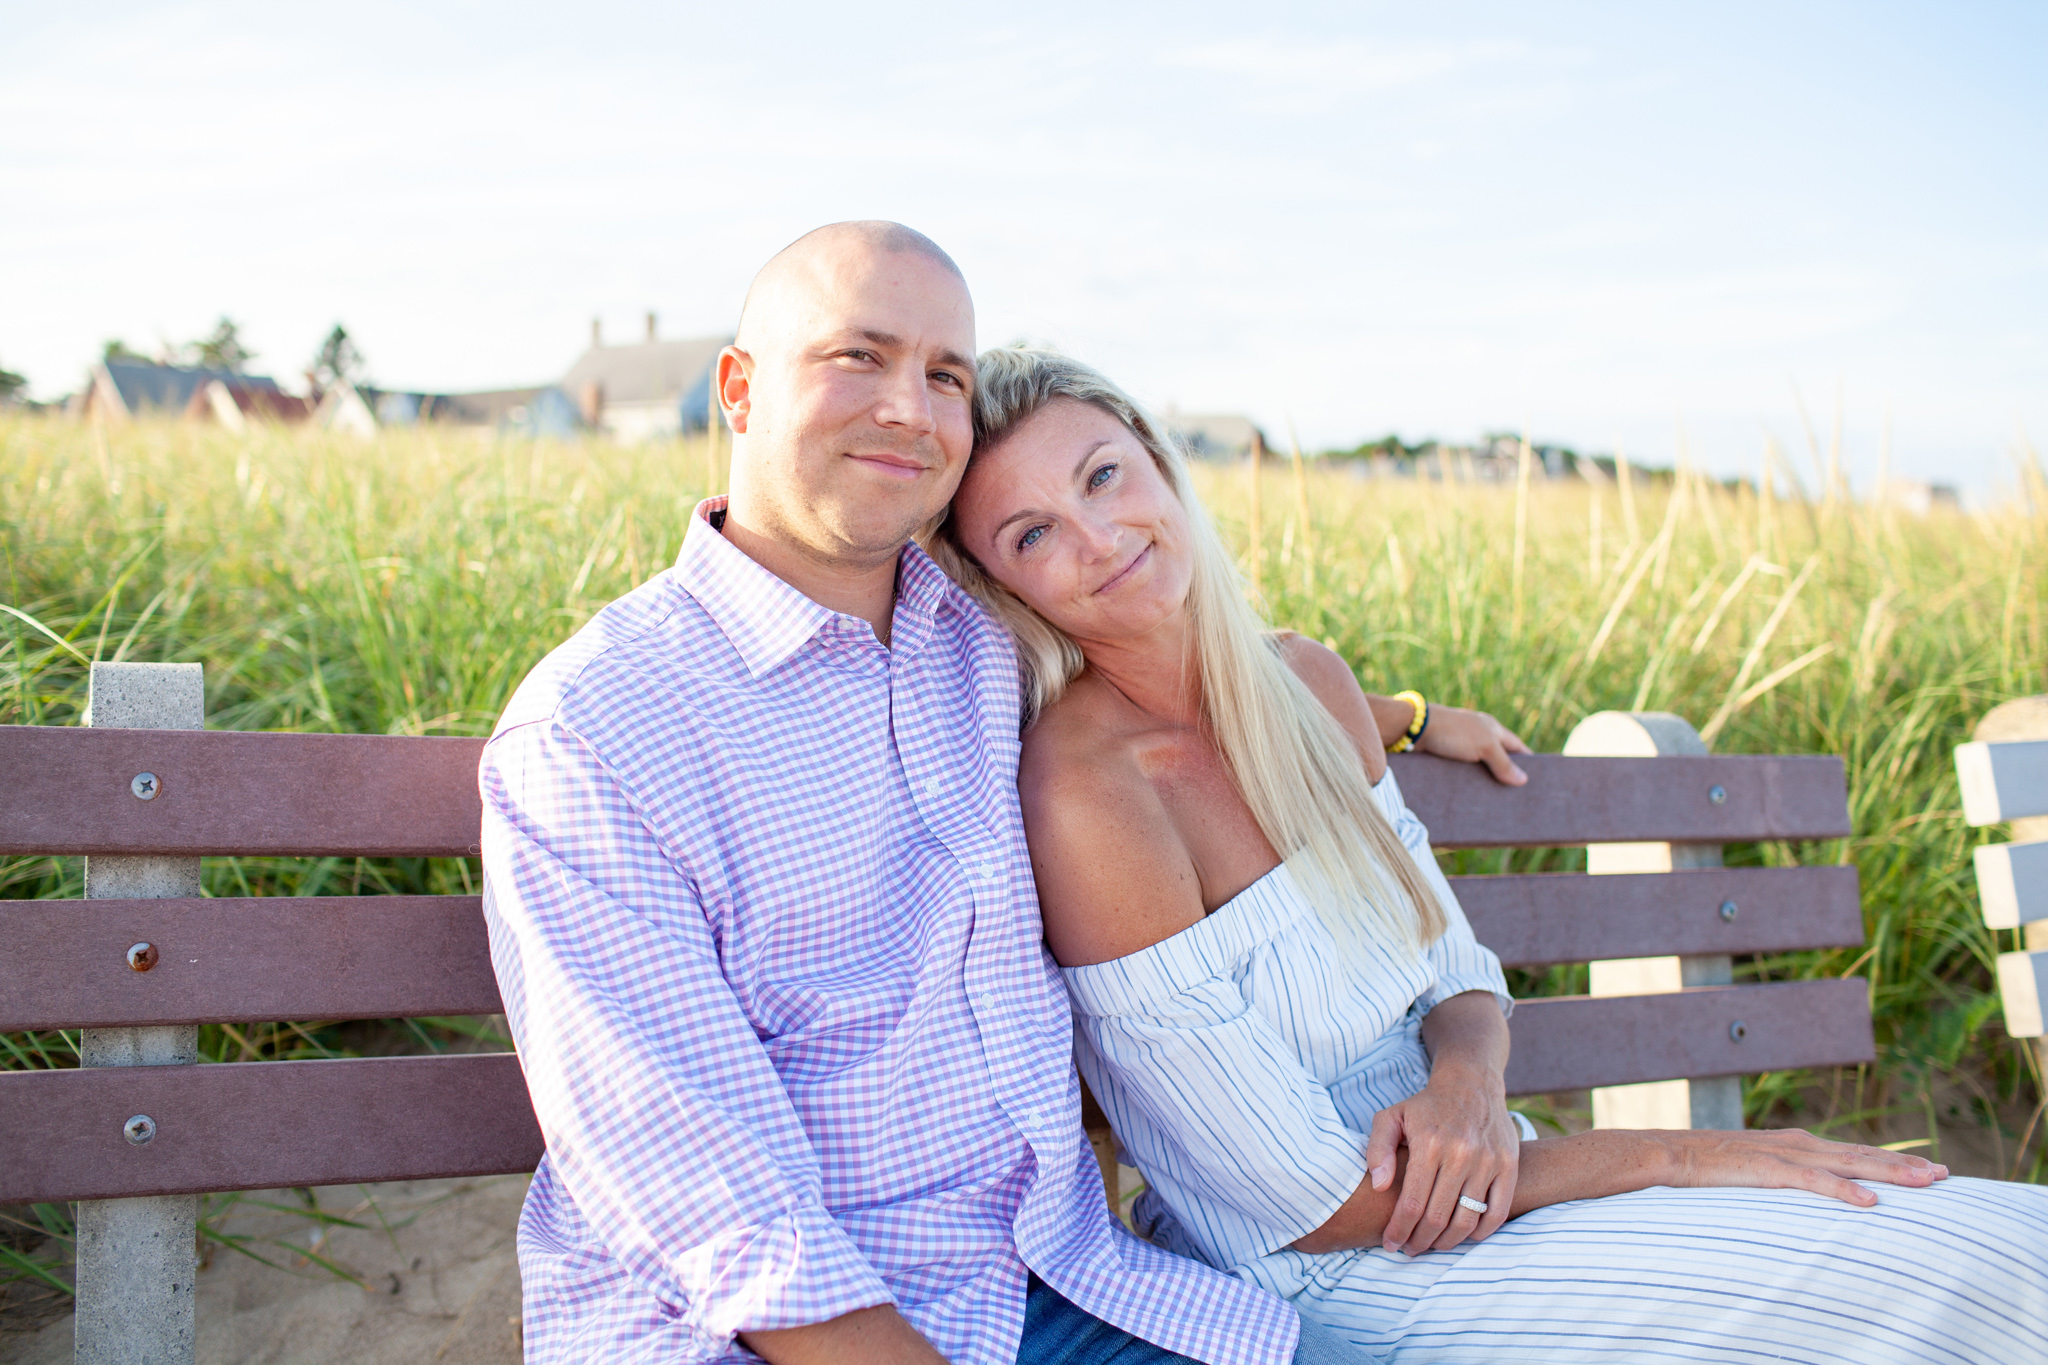 maine-beach-engagement-session-stepheneycollinsphotography-17.jpg